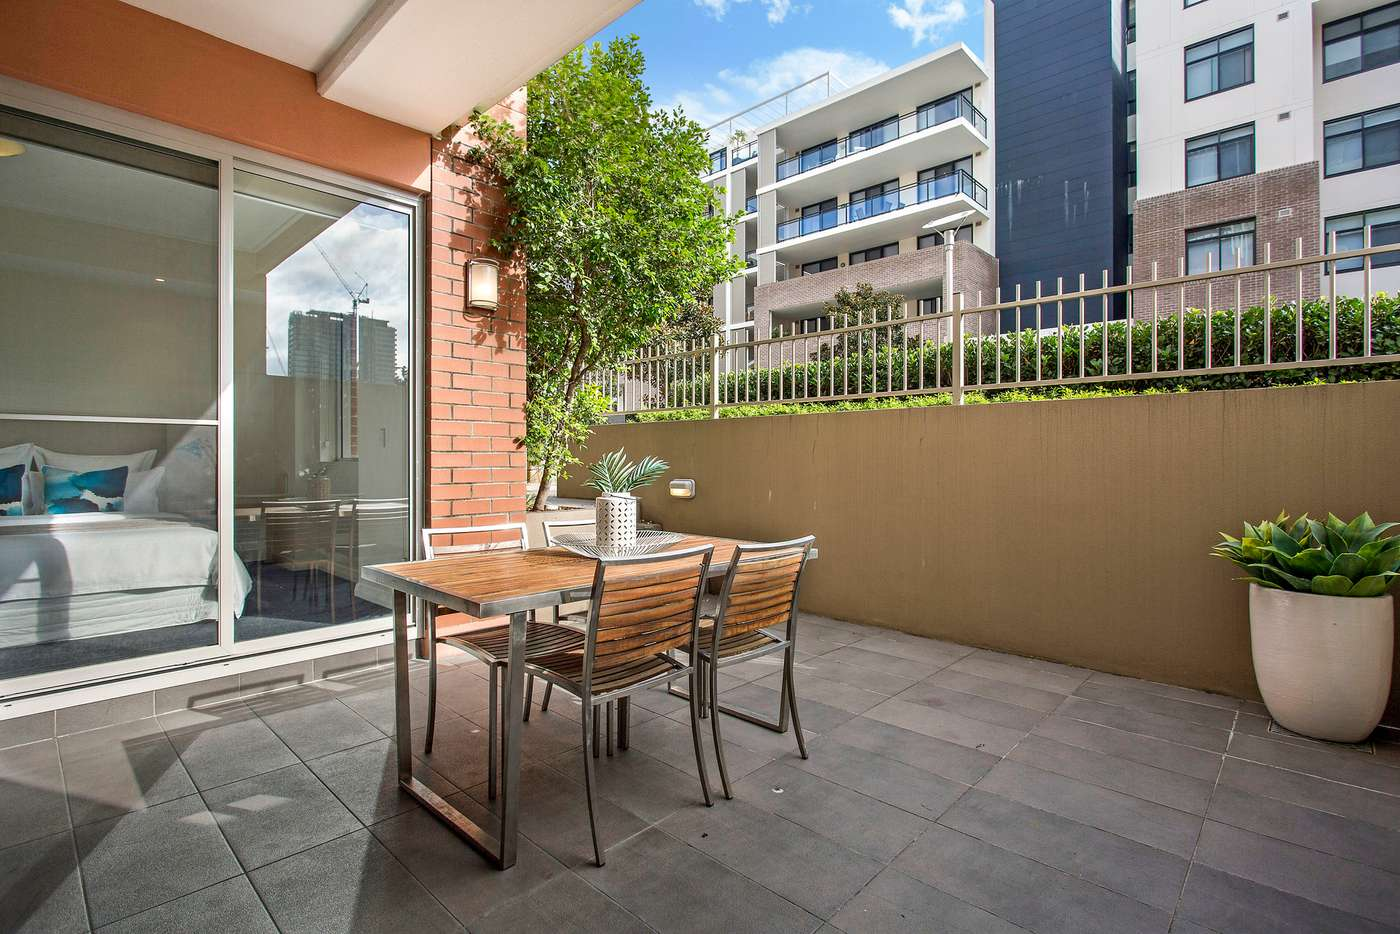 Main view of Homely apartment listing, 113/18 Marine Parade, Wentworth Point NSW 2127